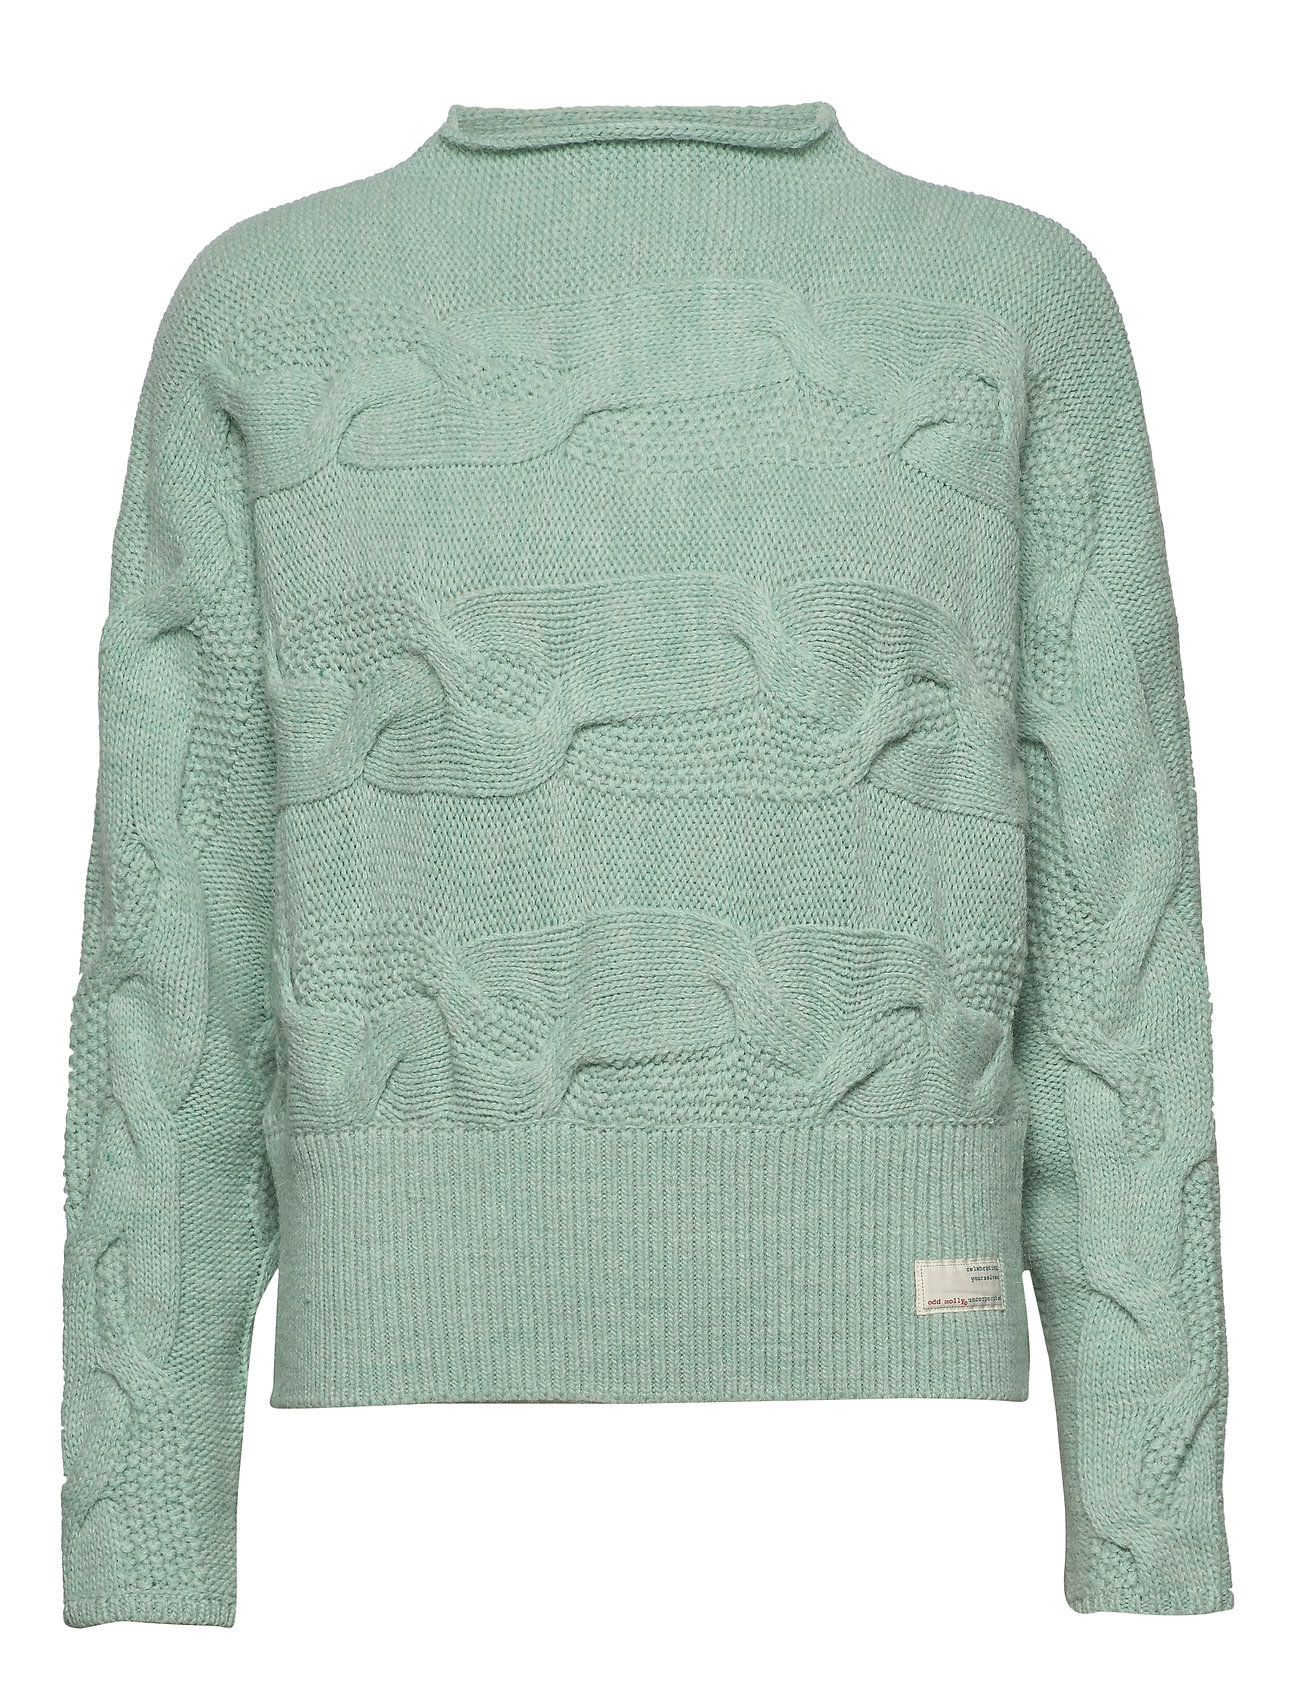 ODD MOLLY Spun Dreams Sweater - MISTY MINT